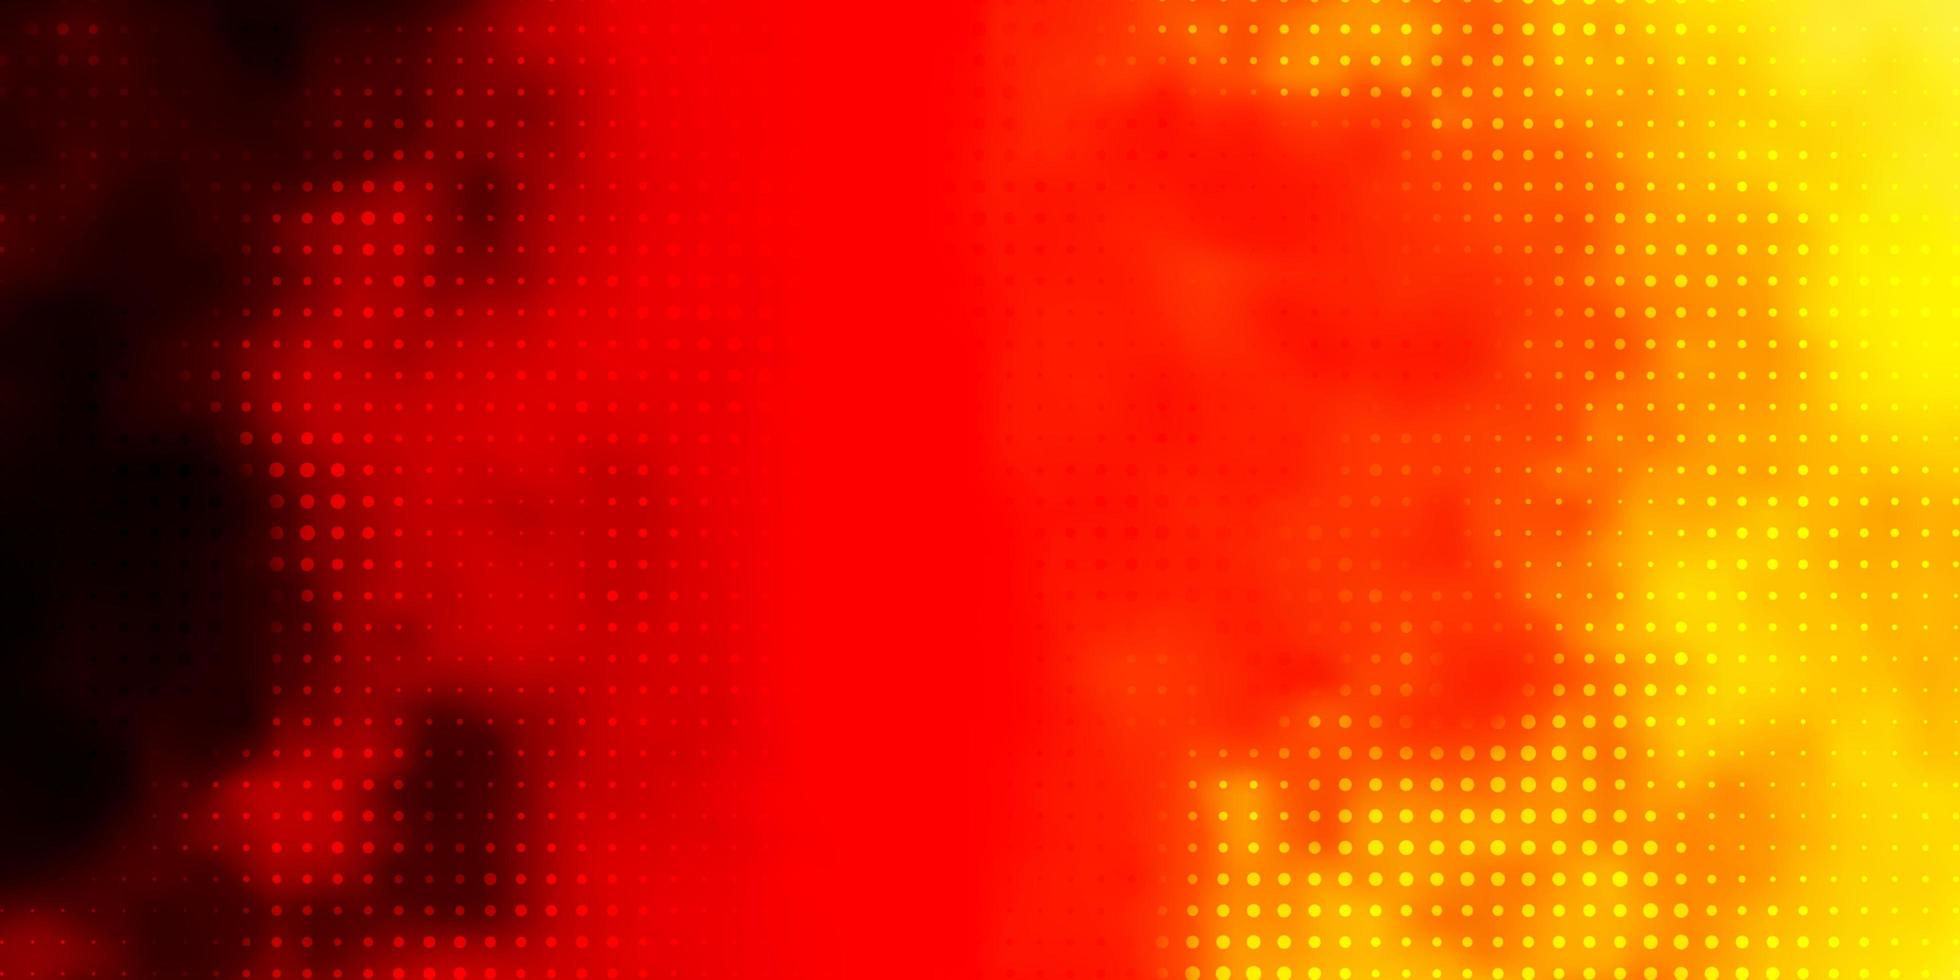 Light Red, Yellow vector background with circles.